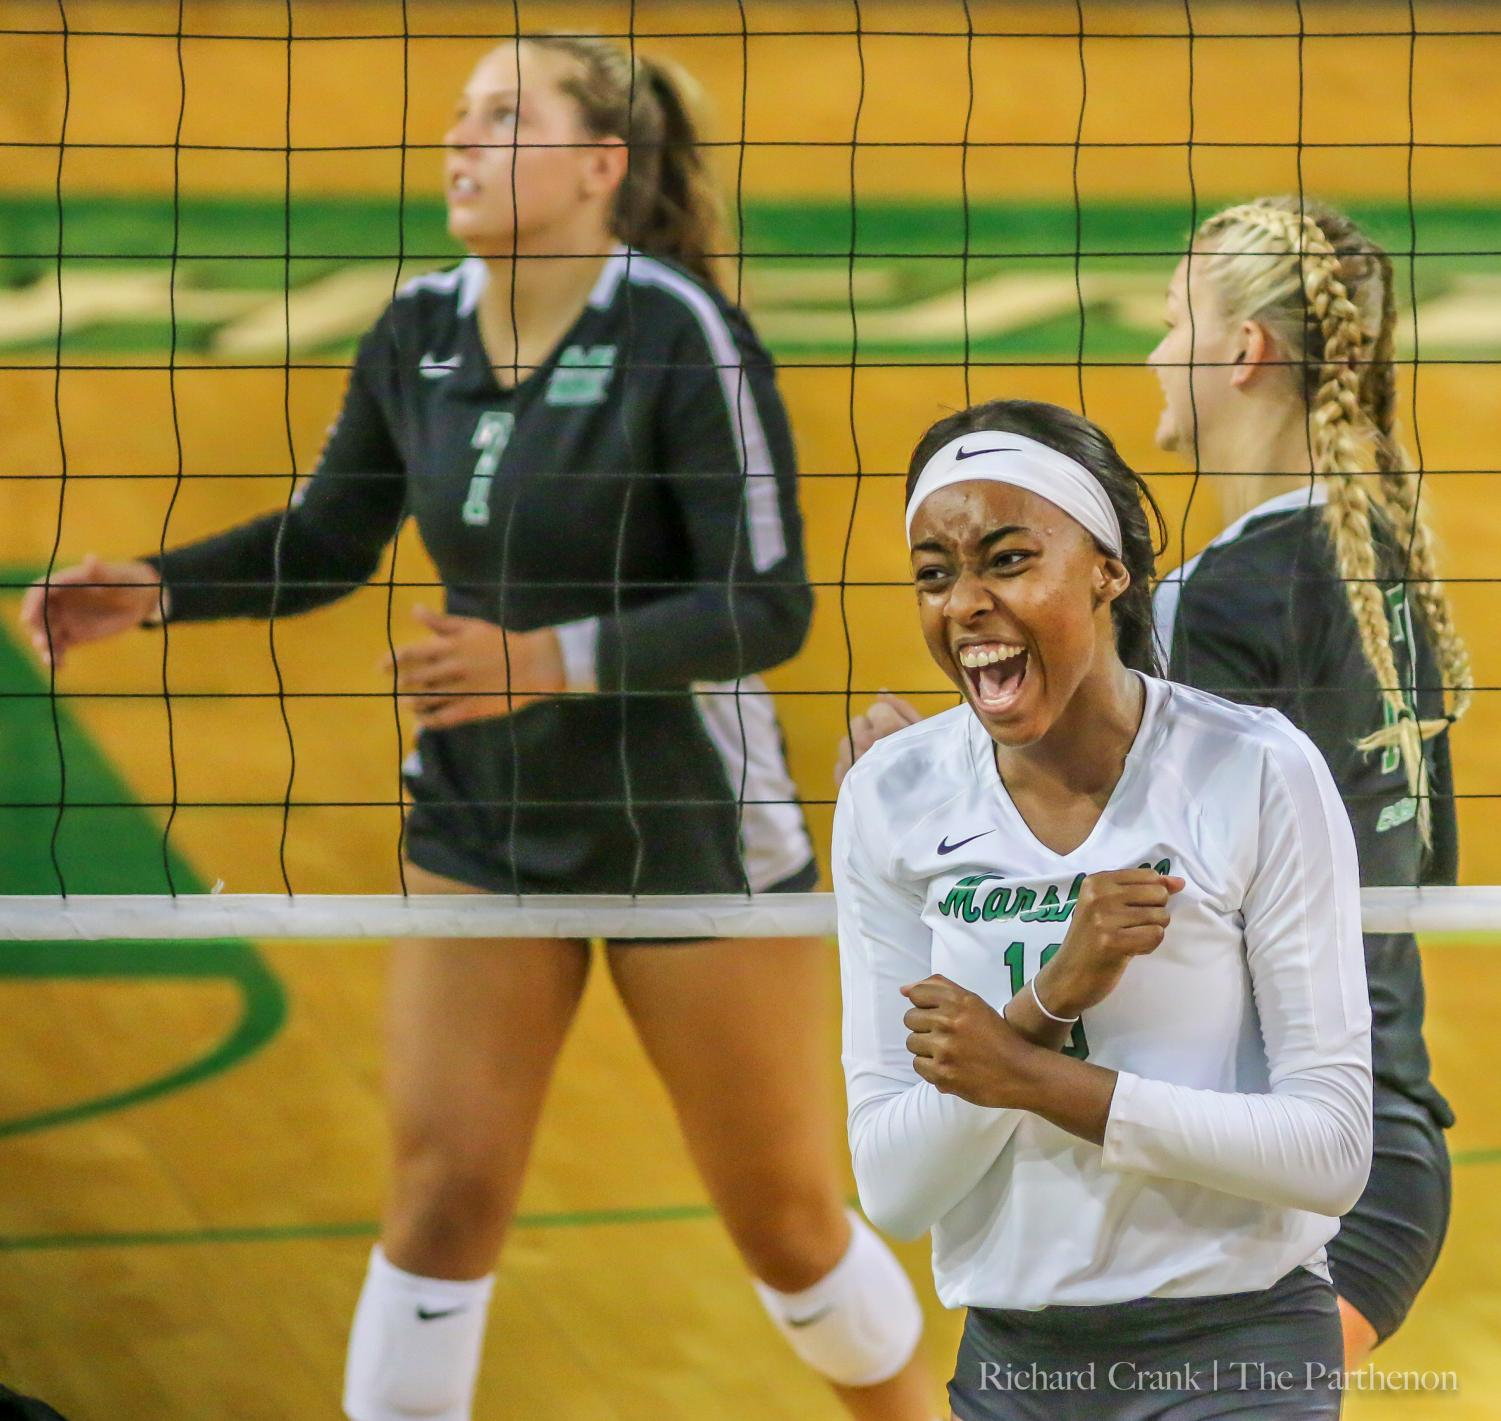 Destiny Leon celebrates a kill in the Green vs White volleyball match.